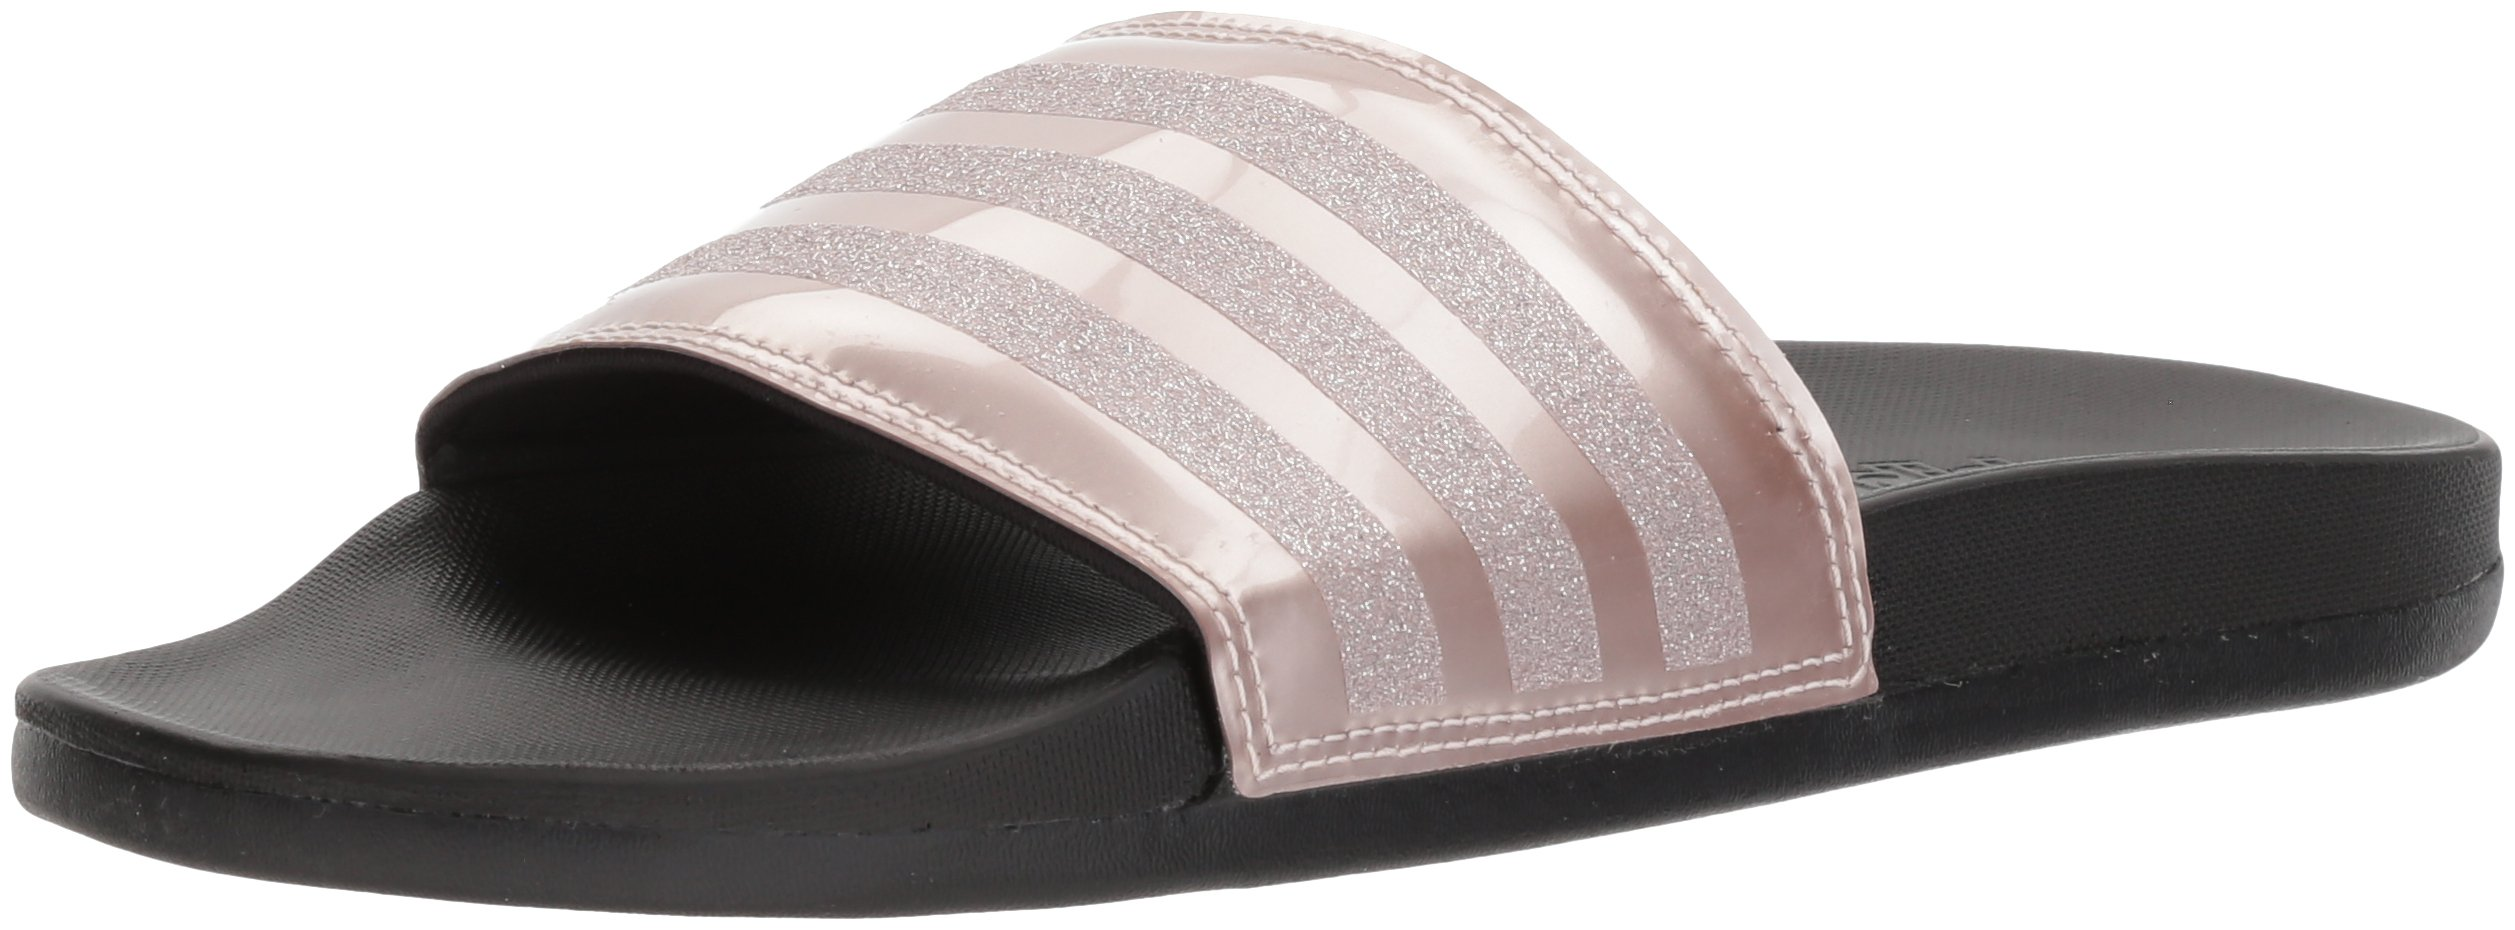 adidas Performance Women's Adilette Comfort Slide Sandal, Vapour Grey Metallic/Vapour Grey Metallic/Black, 8 M US